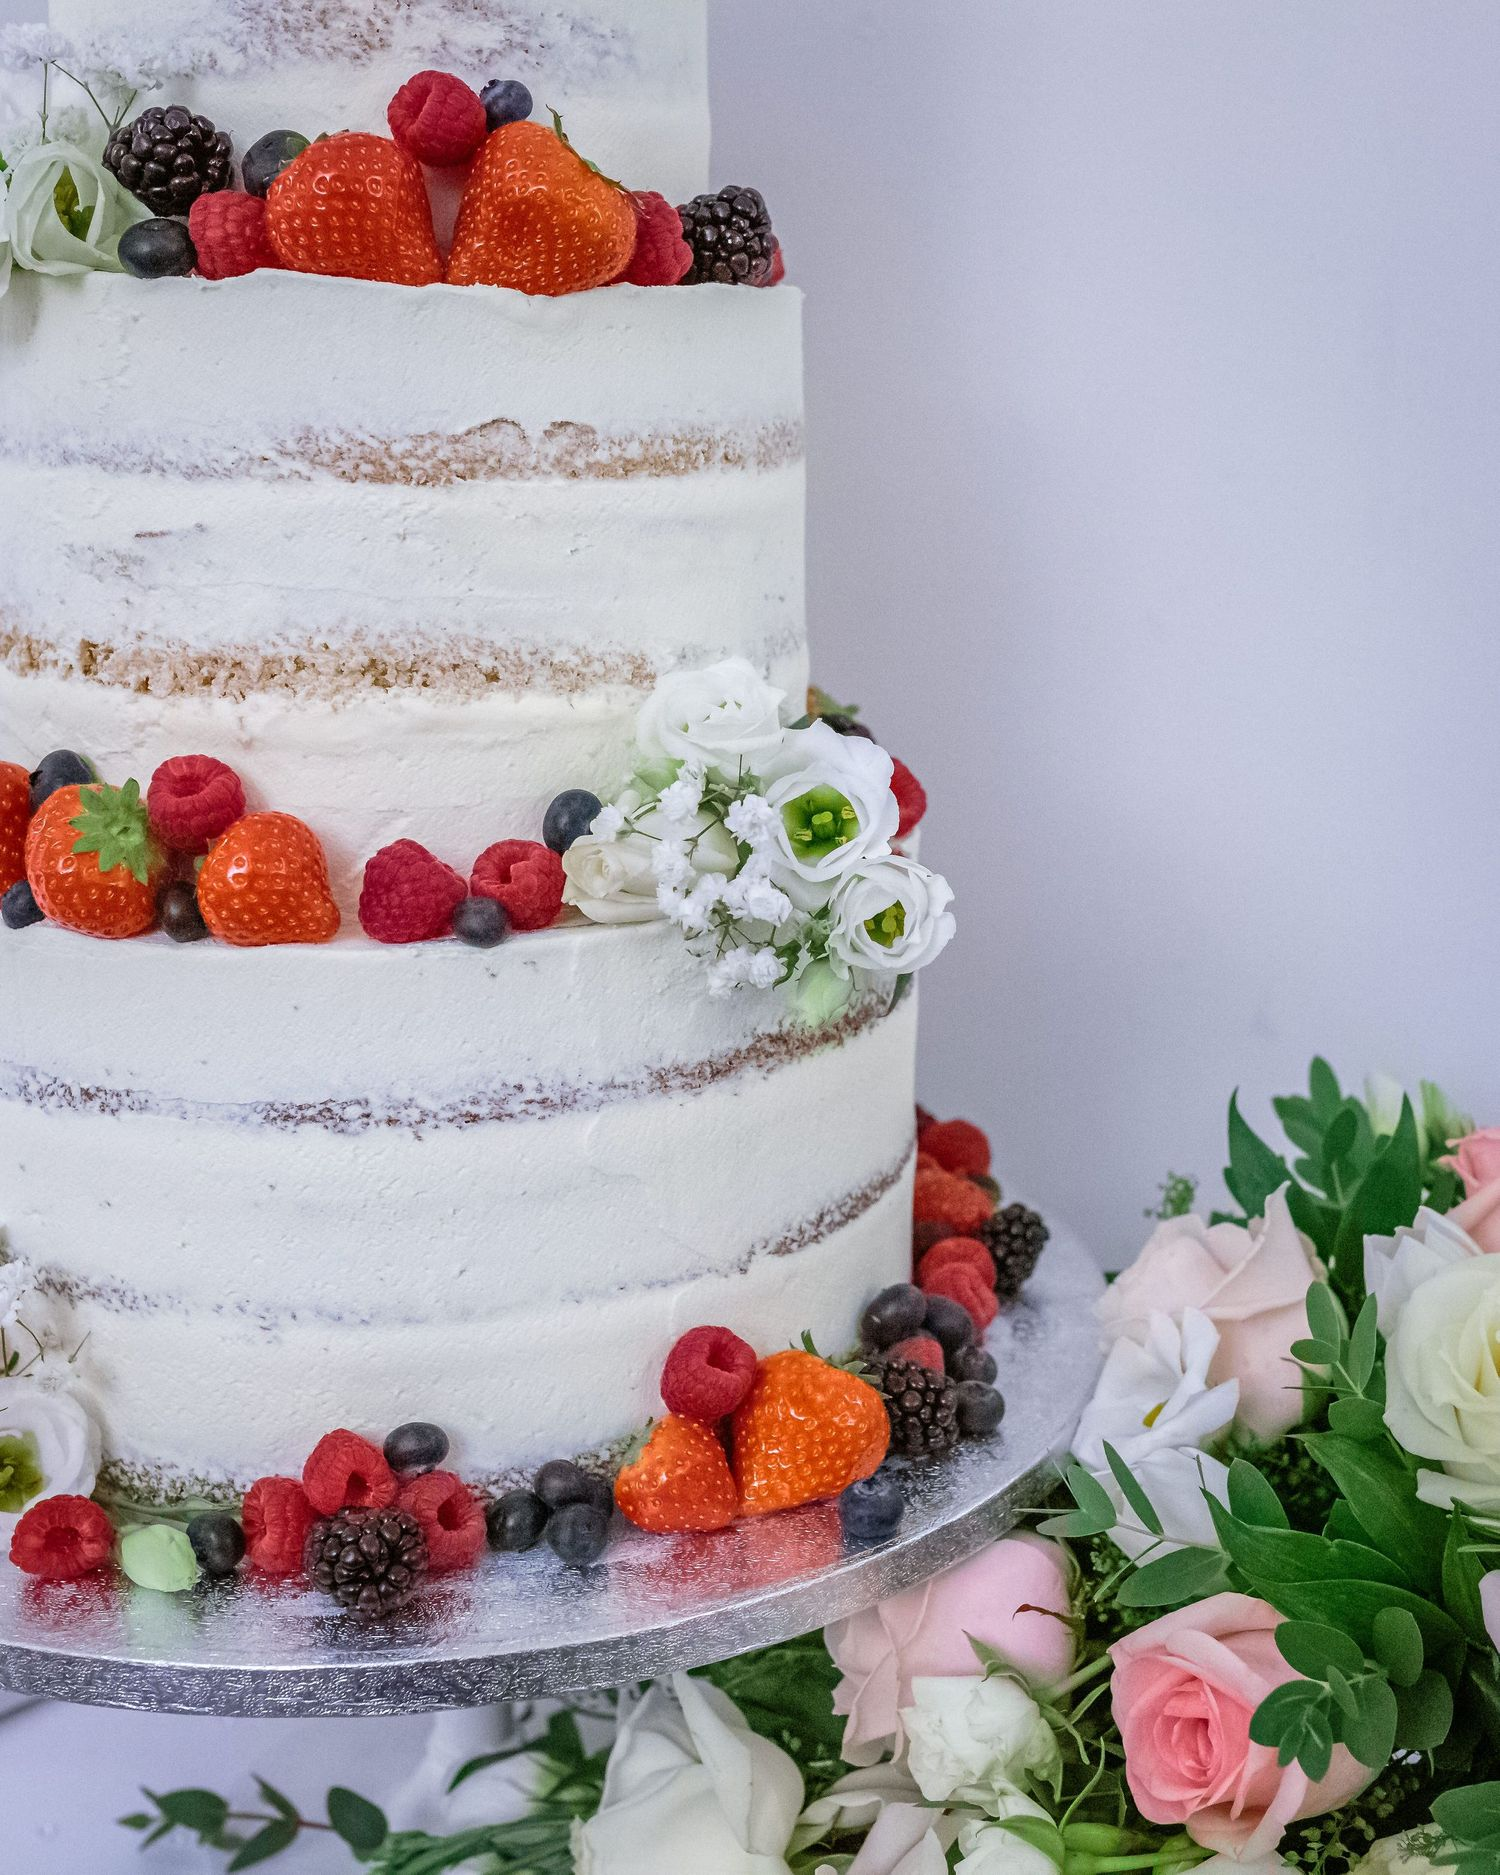 detail shot of the rustic wedding cake with berries as decoration